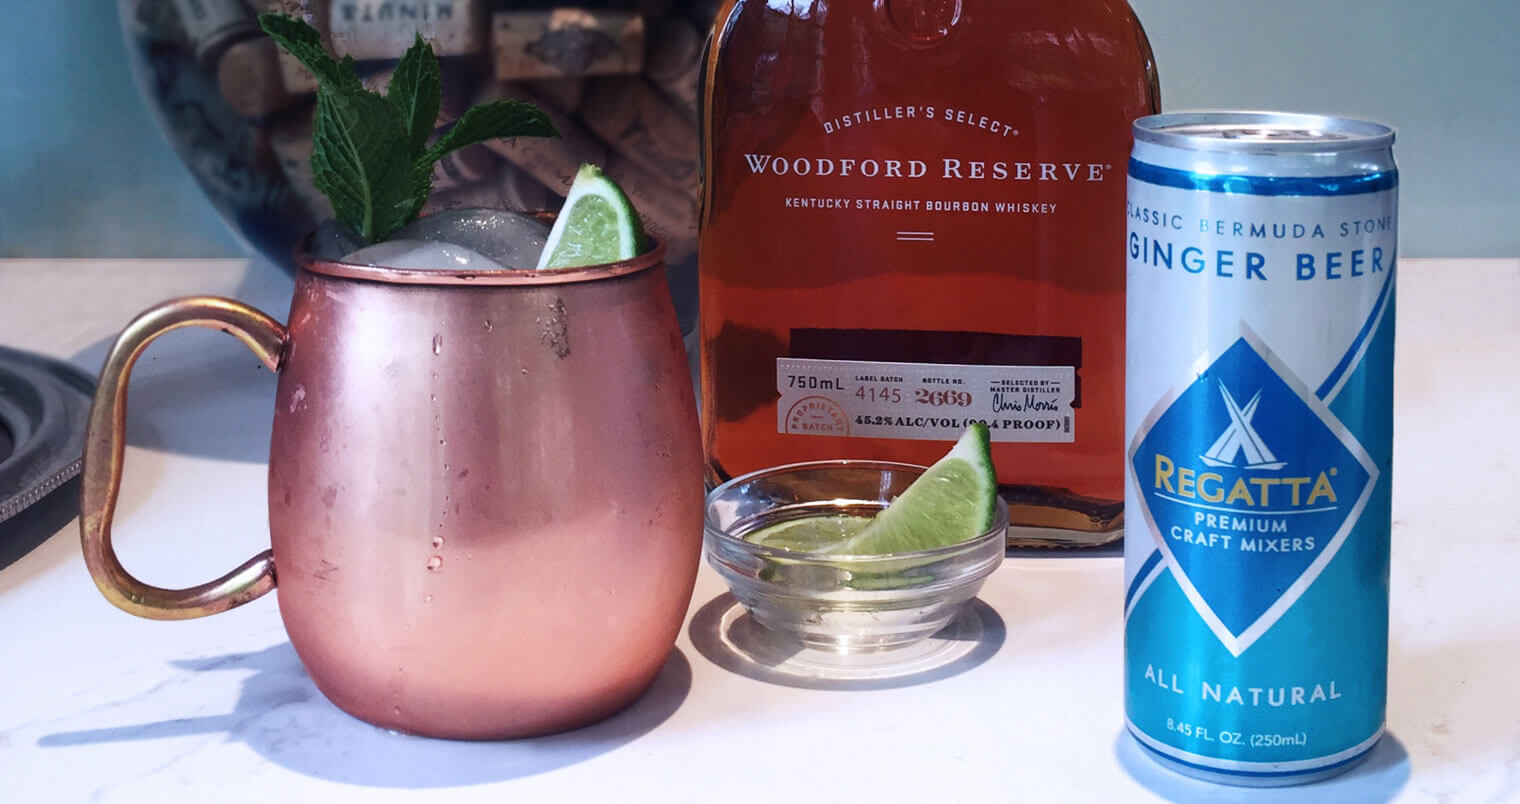 Regatta Kentucky Mule, bottle and cocktail with variety of decoration, featured image